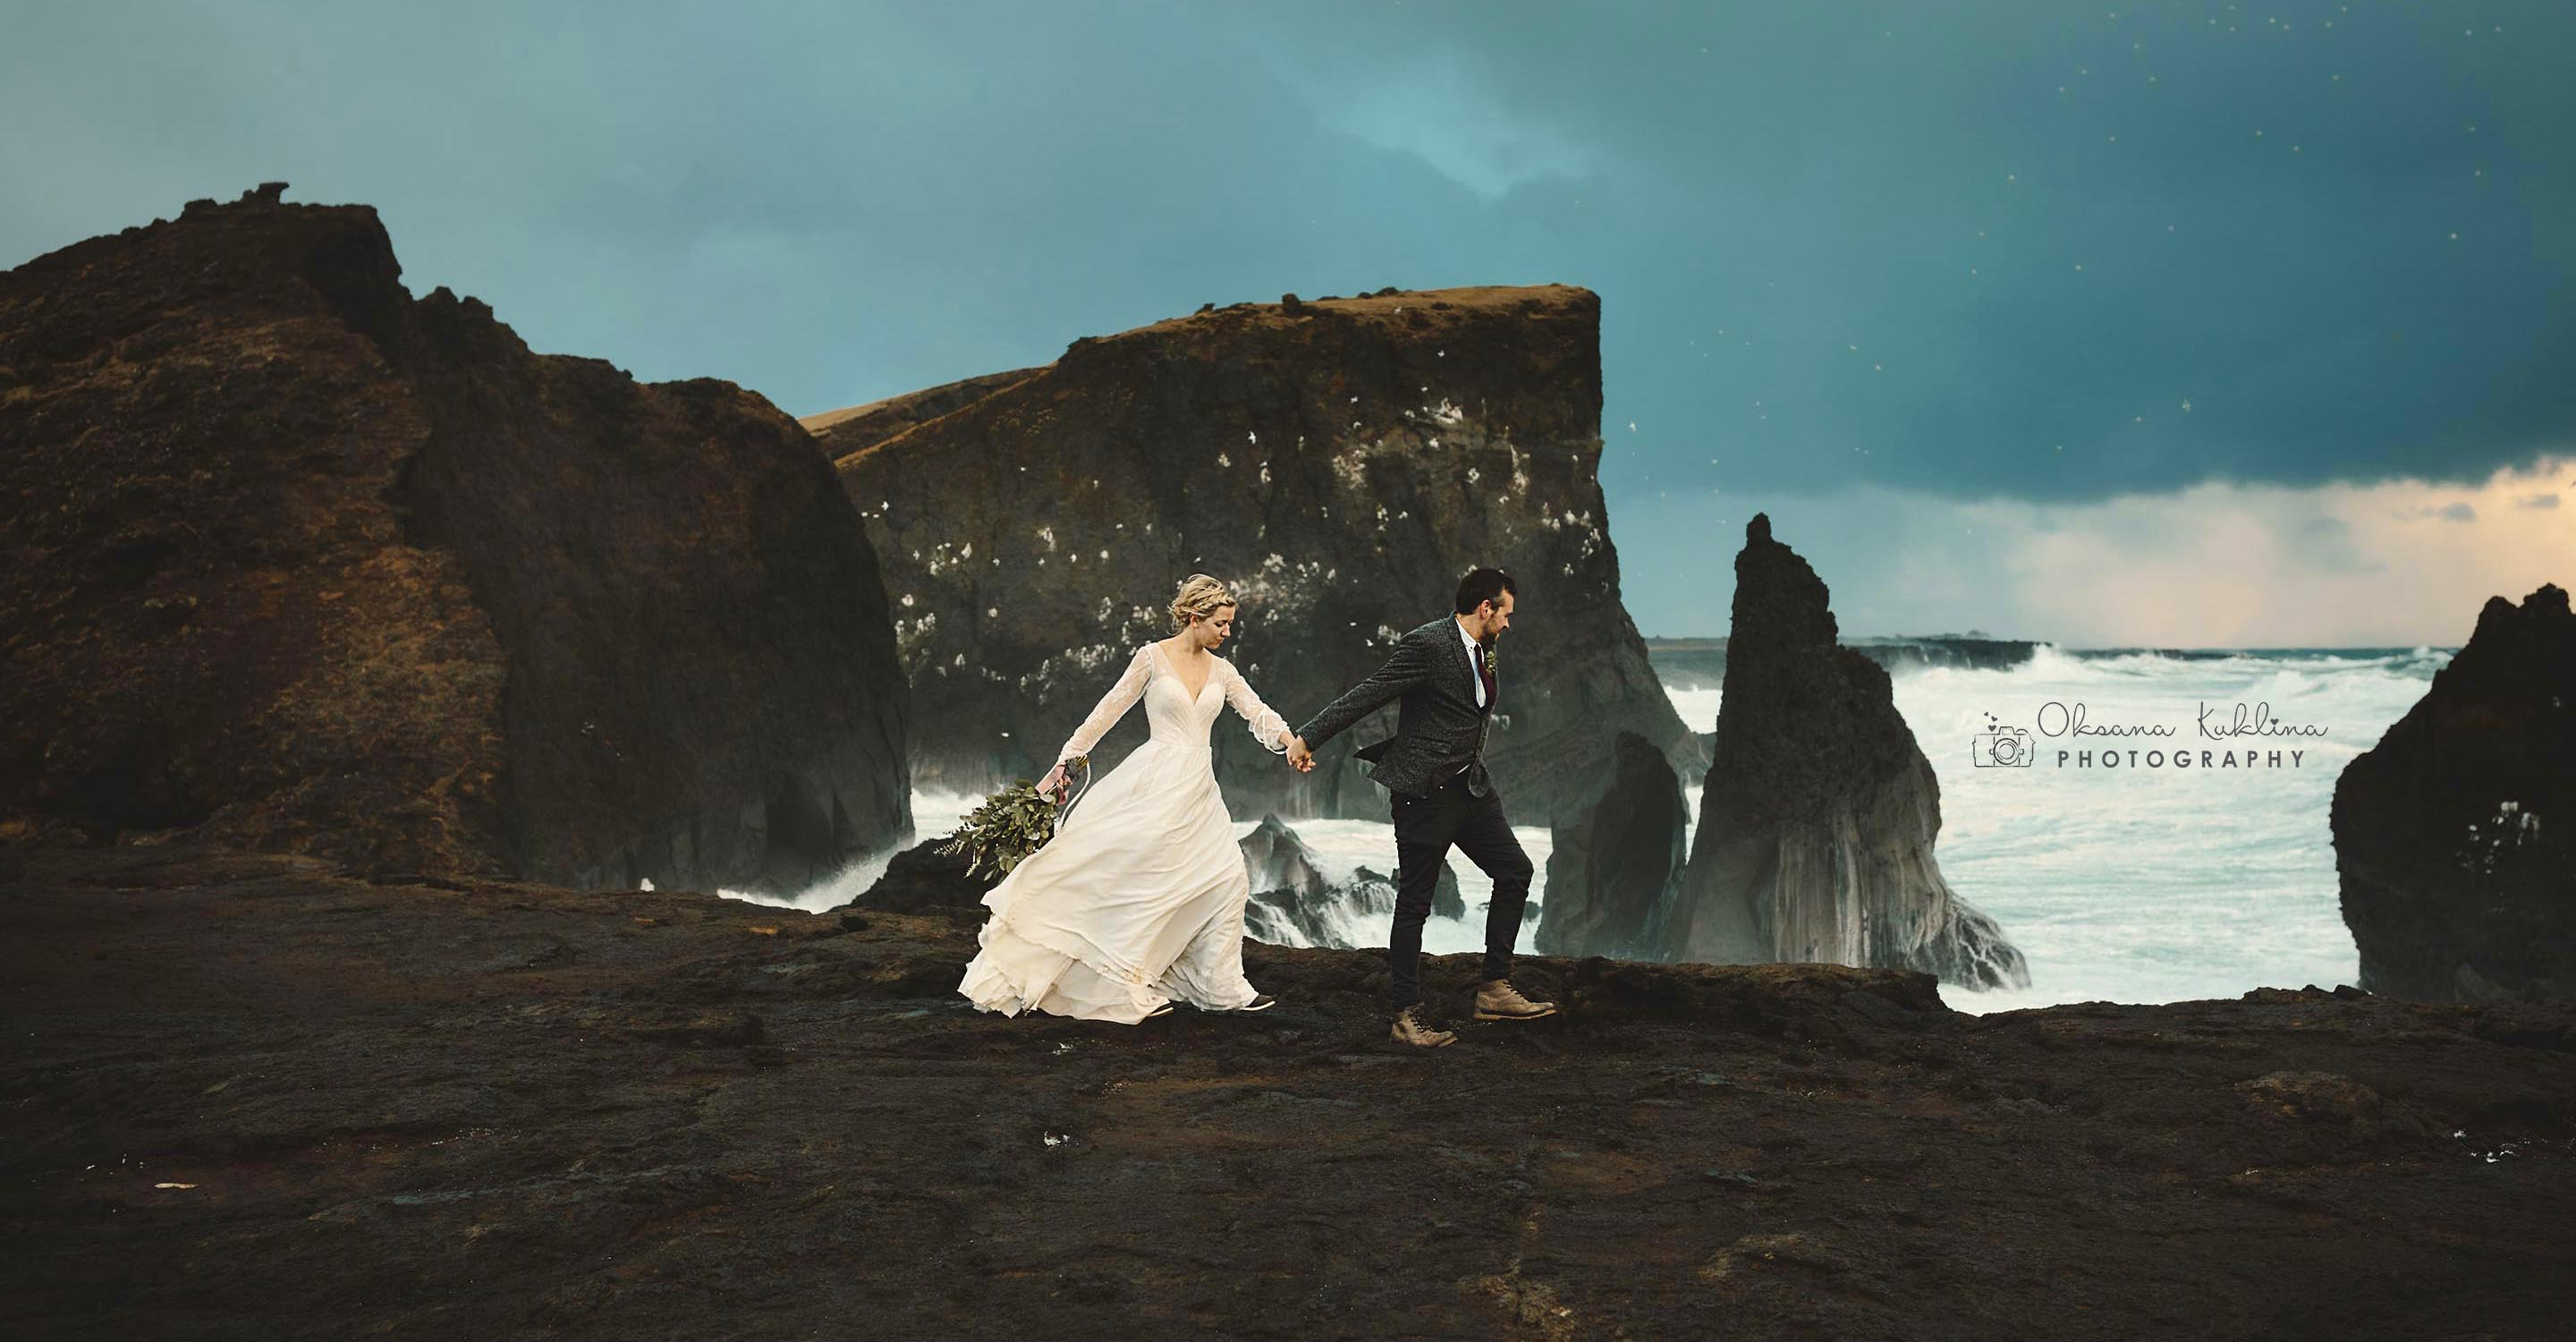 Scotland Elopement Photography - Adventurous Elopement in Iceland - Destination Wedding